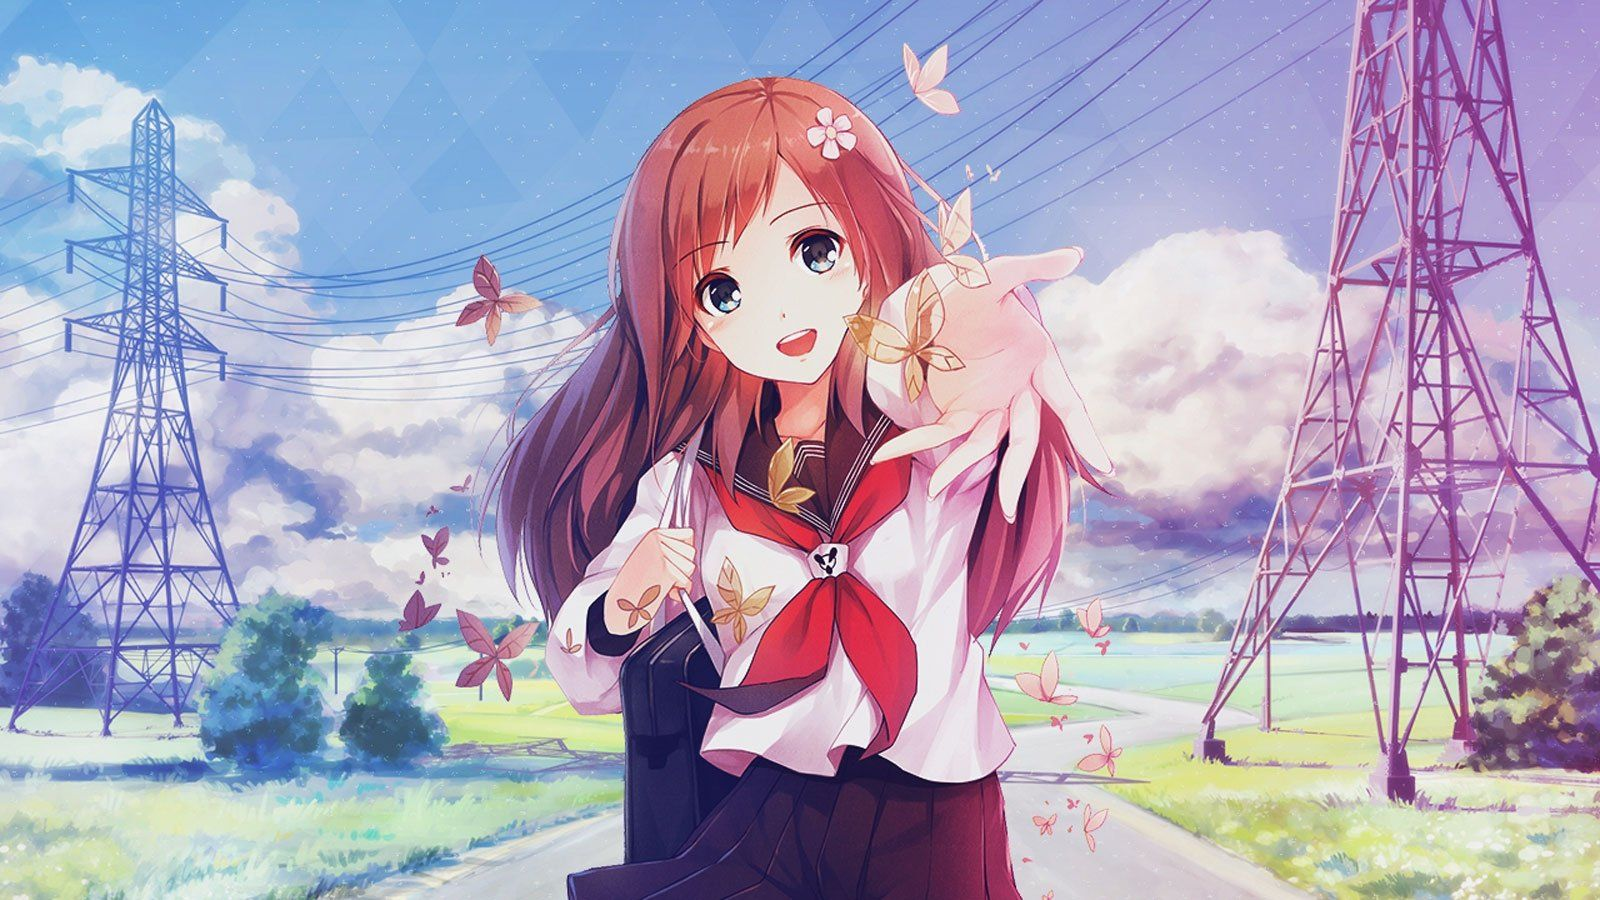 Cute Anime Girl Wallpaper Posted By Ethan Walker